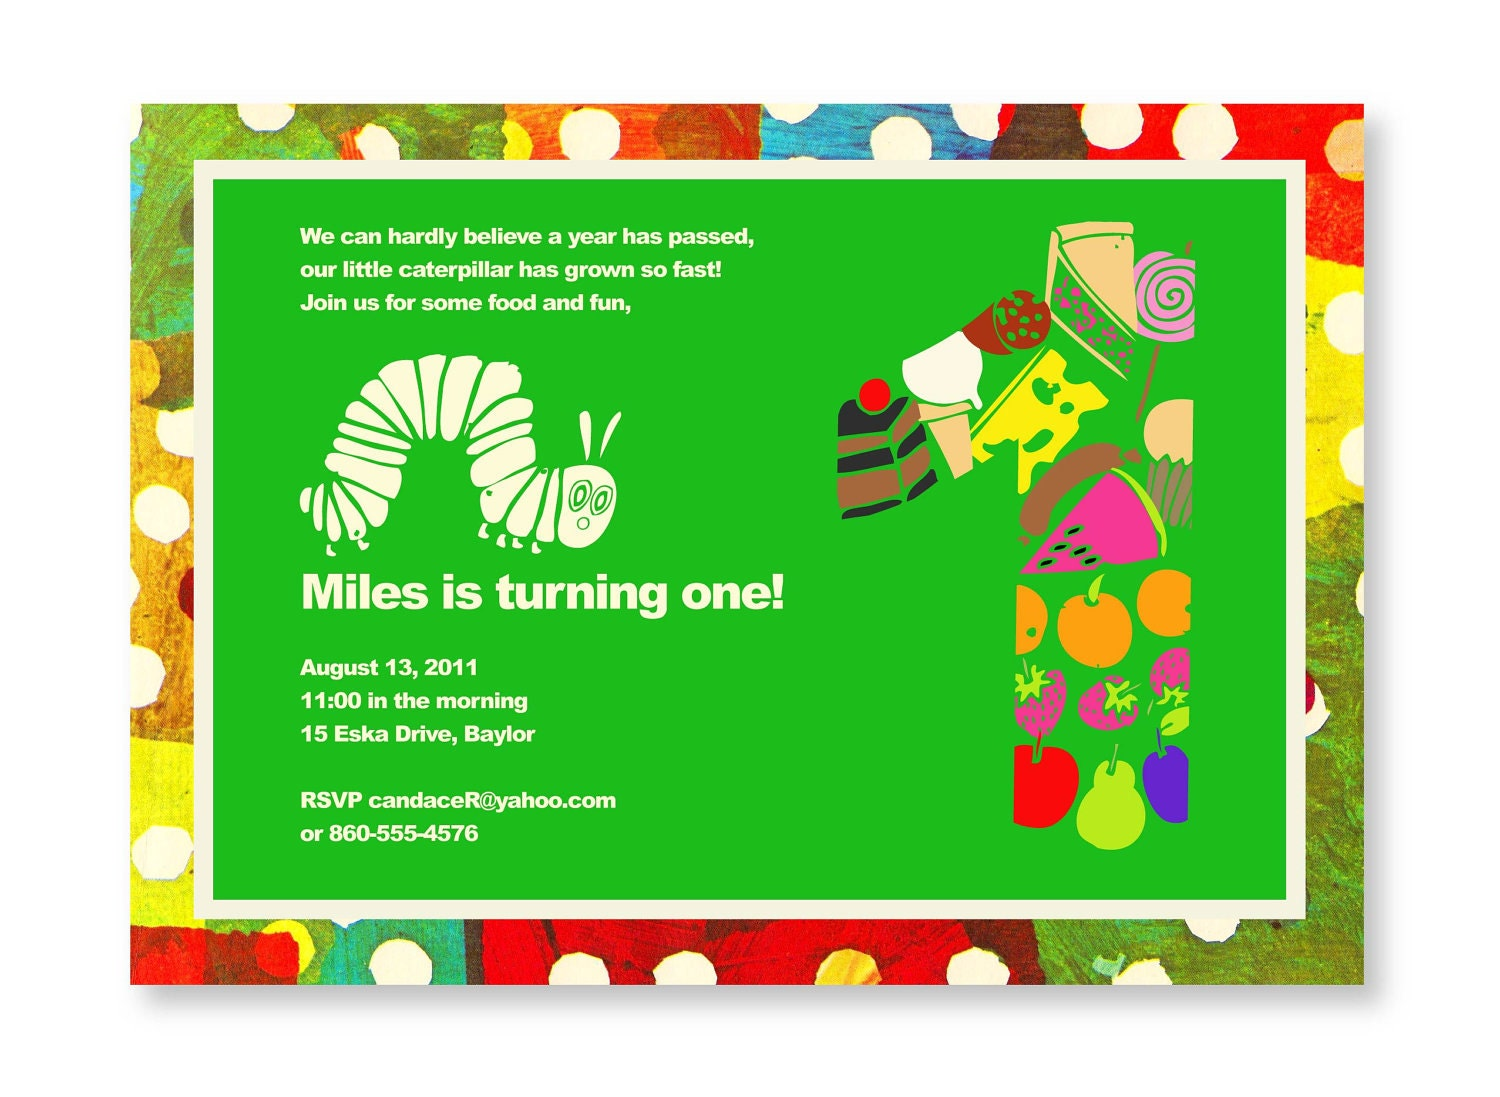 First birthday party photos Very Hungry Caterpillar Theme – Eric Carle Birthday Invitations